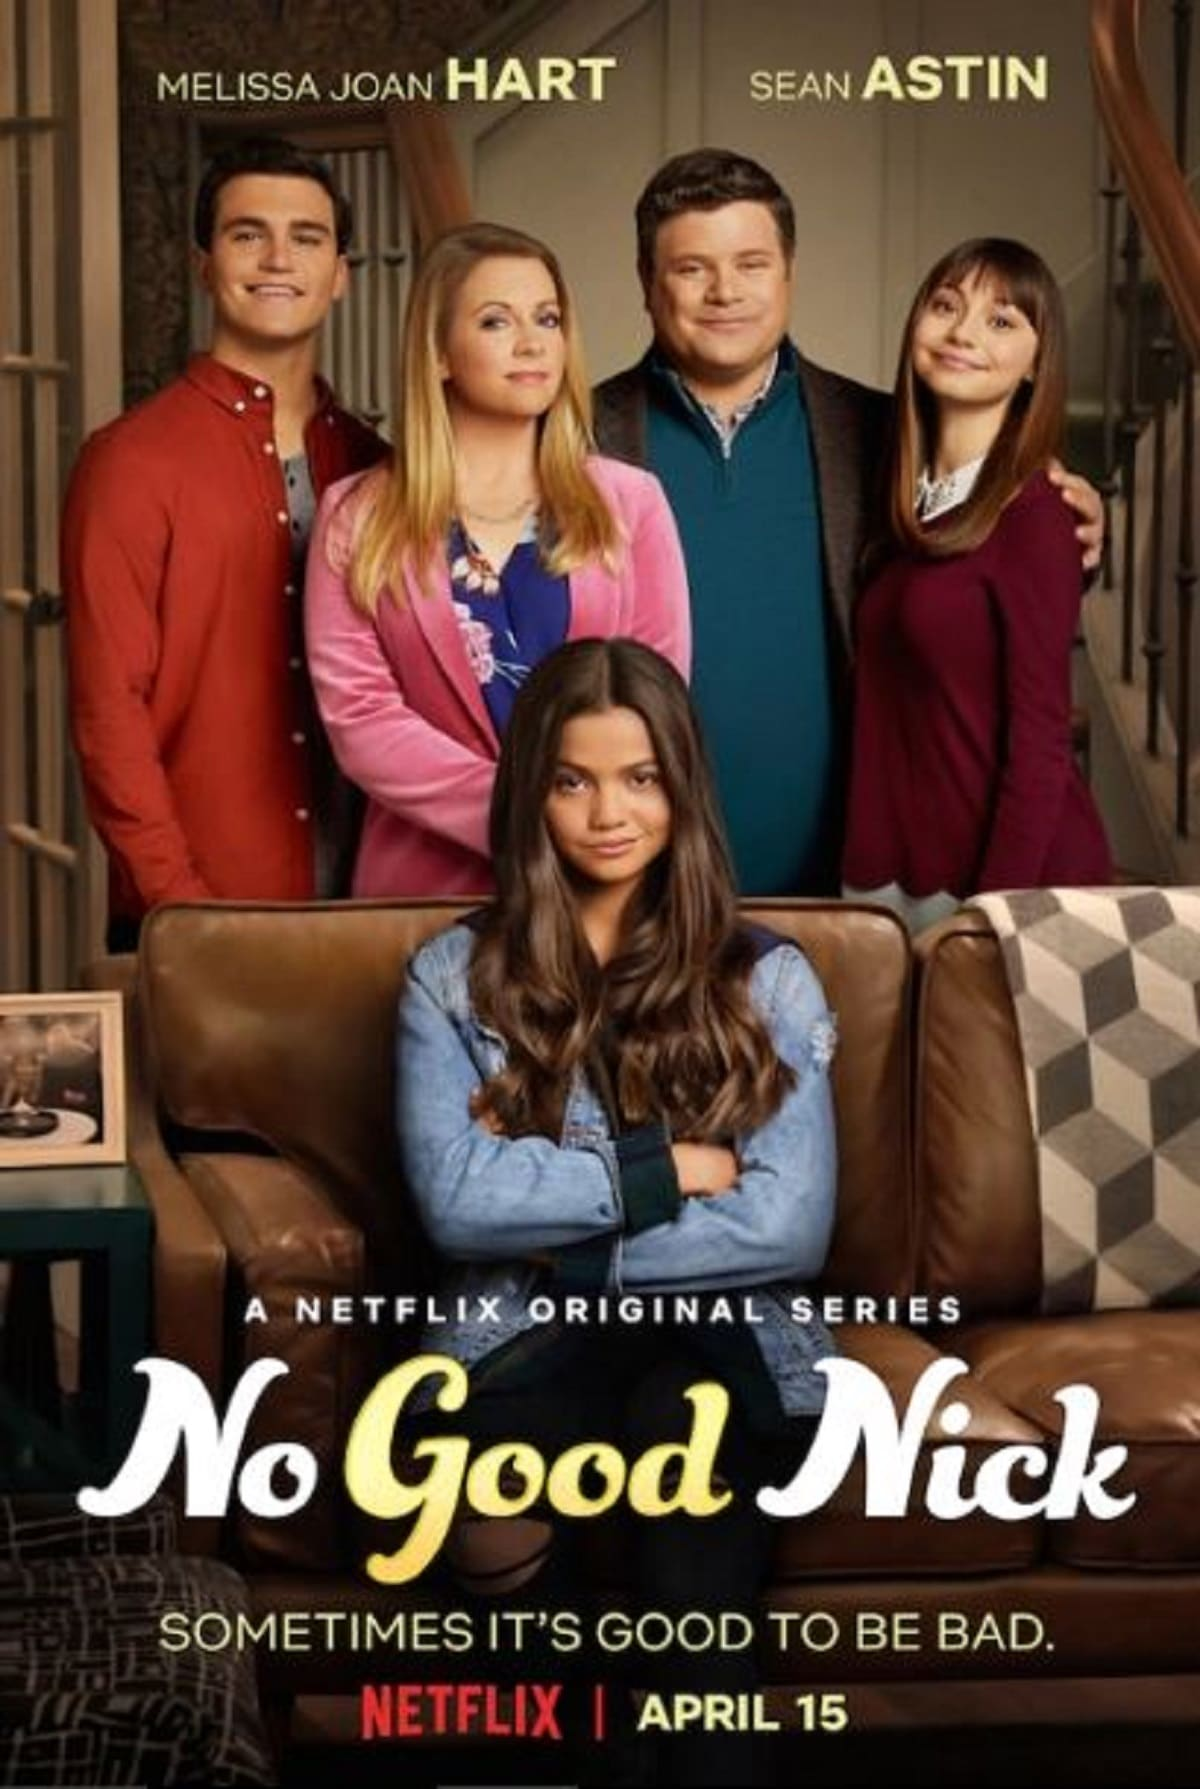 Siena Agudong in No Good Nick